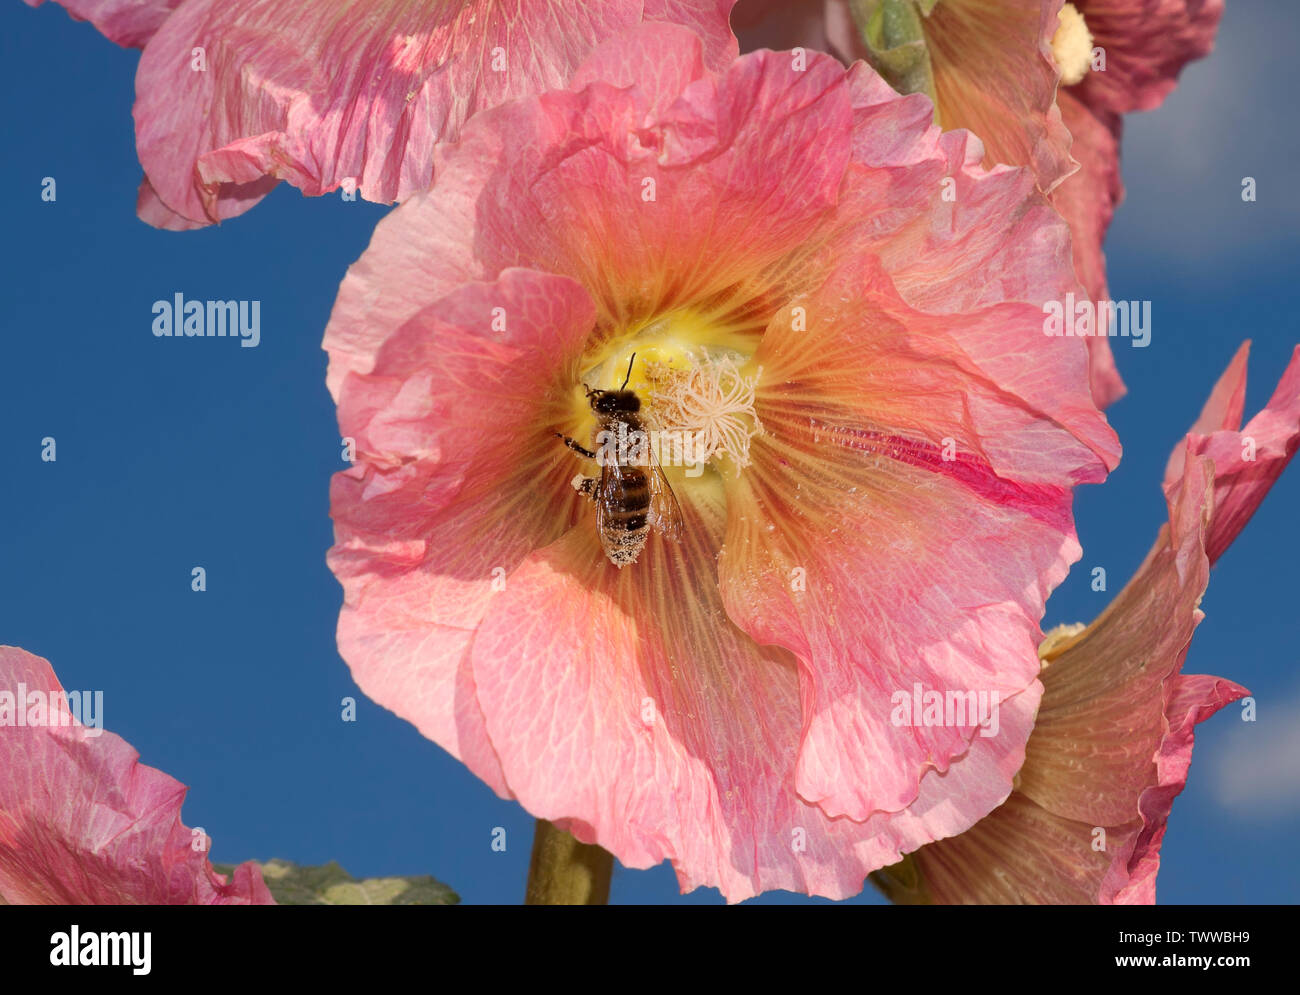 Alcea rosea and a honey bee, the common hollyhock, an ornamental plant in the family Malvaceae Stock Photo